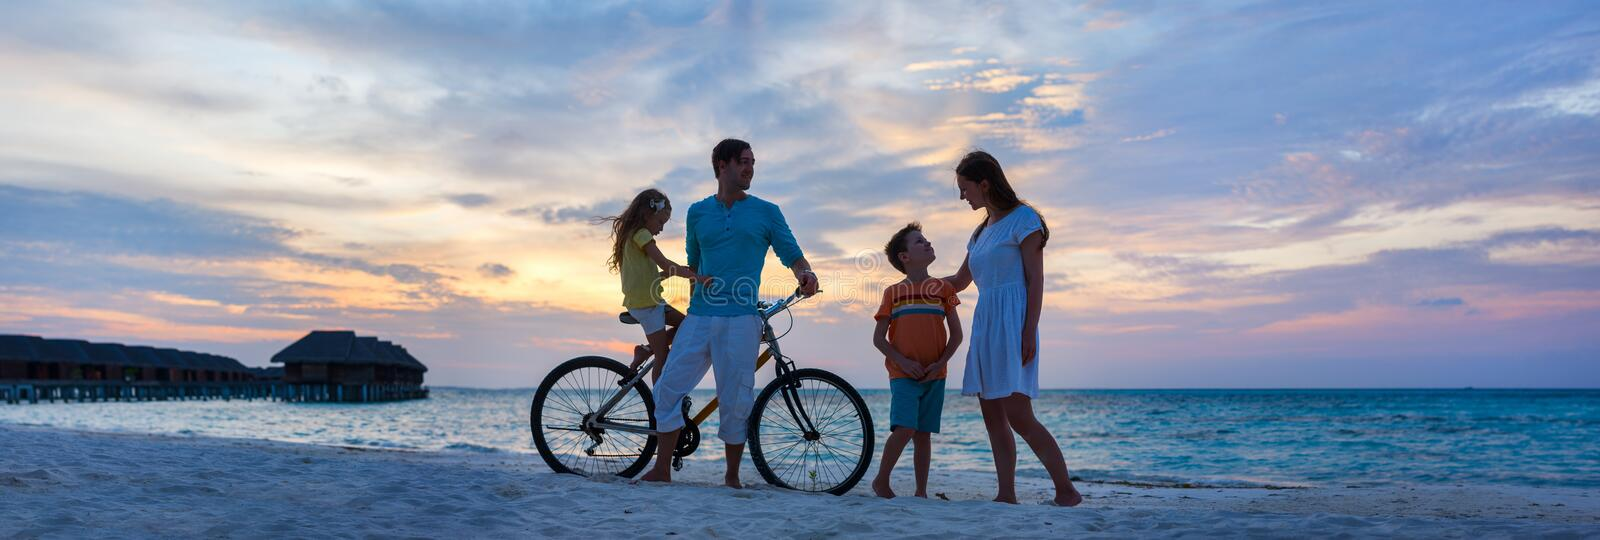 Family with a bike at tropical beach royalty free stock photo